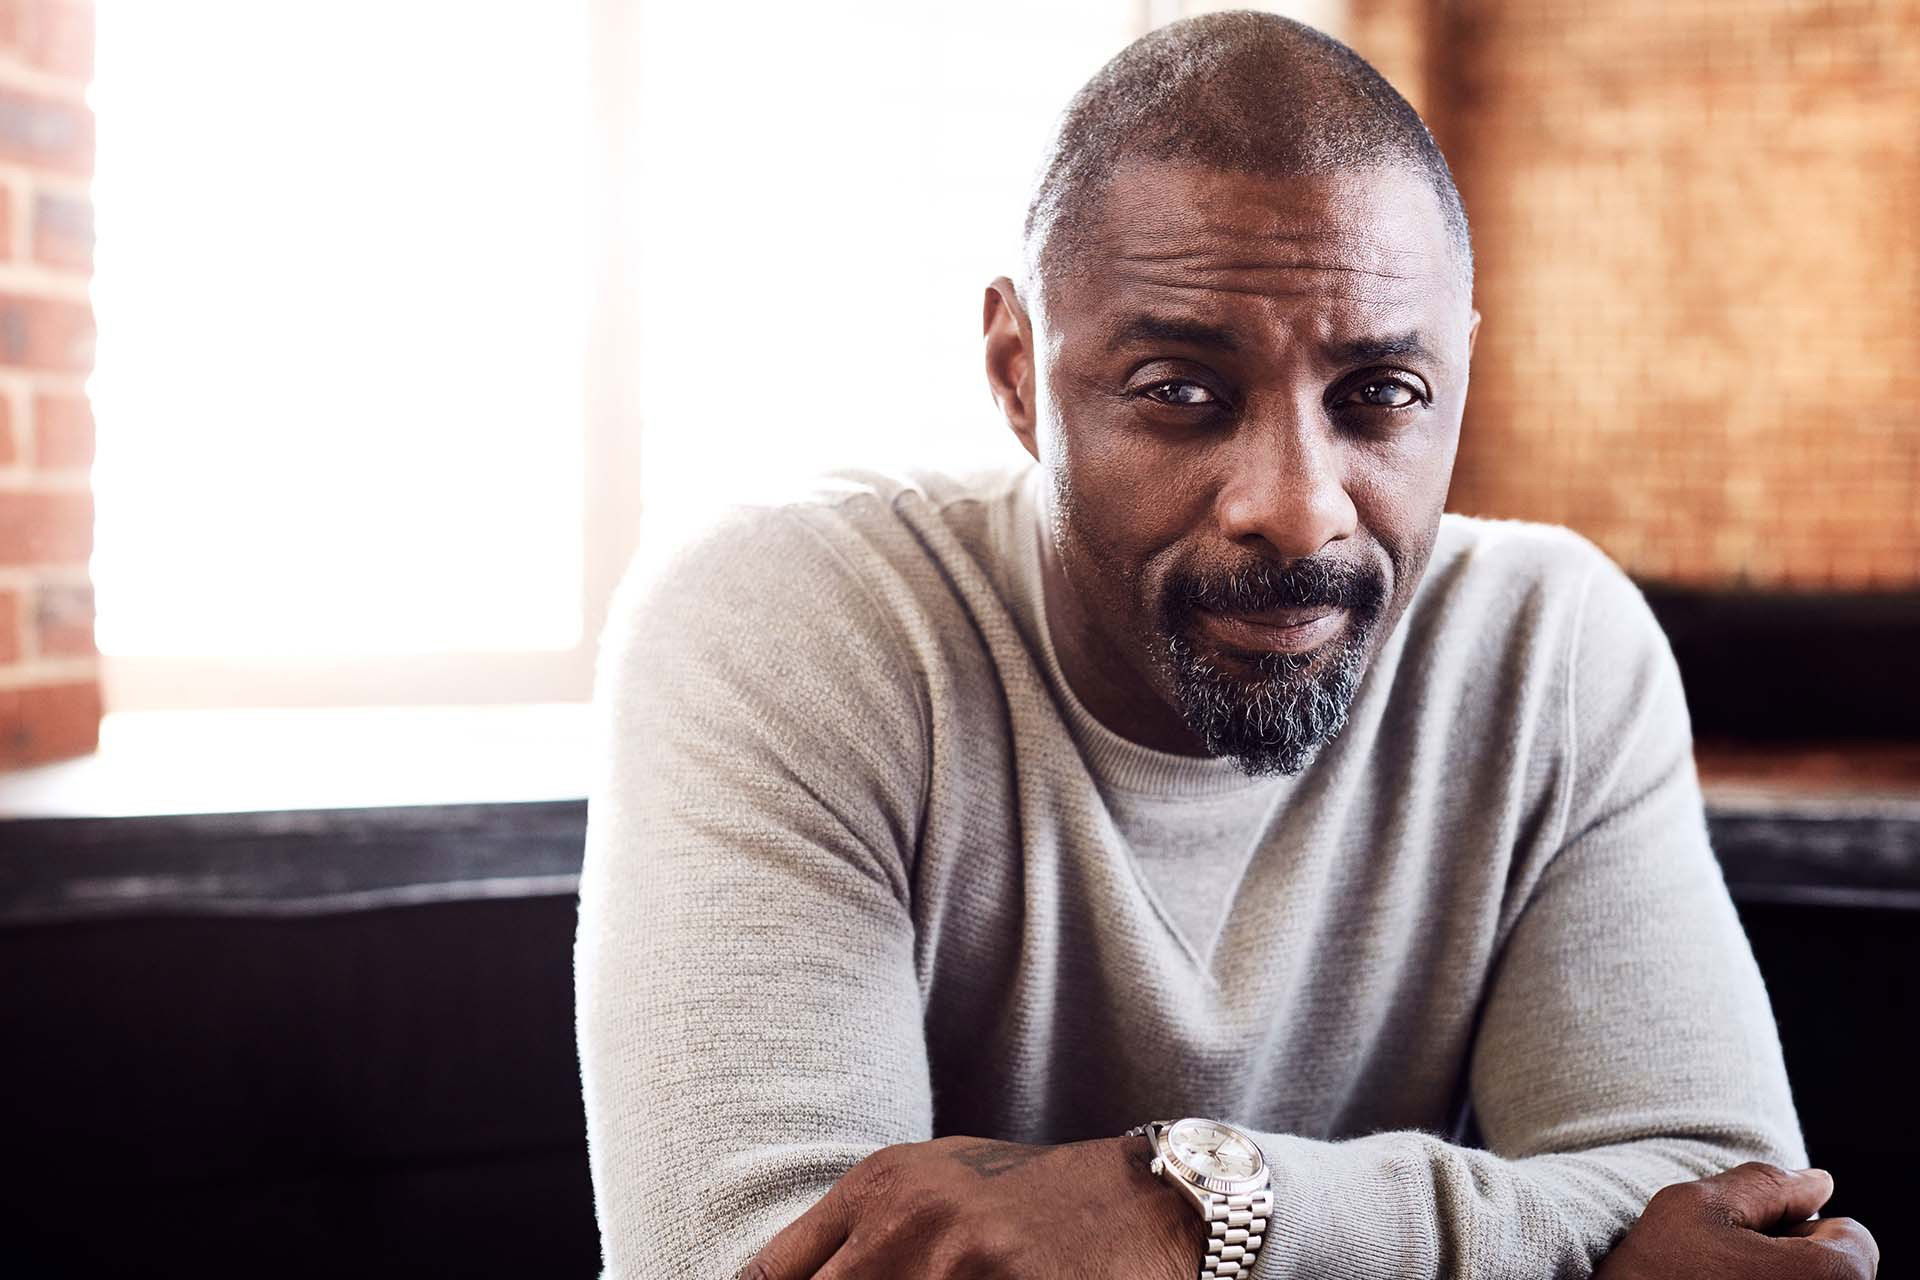 Bonding with Idris Elba